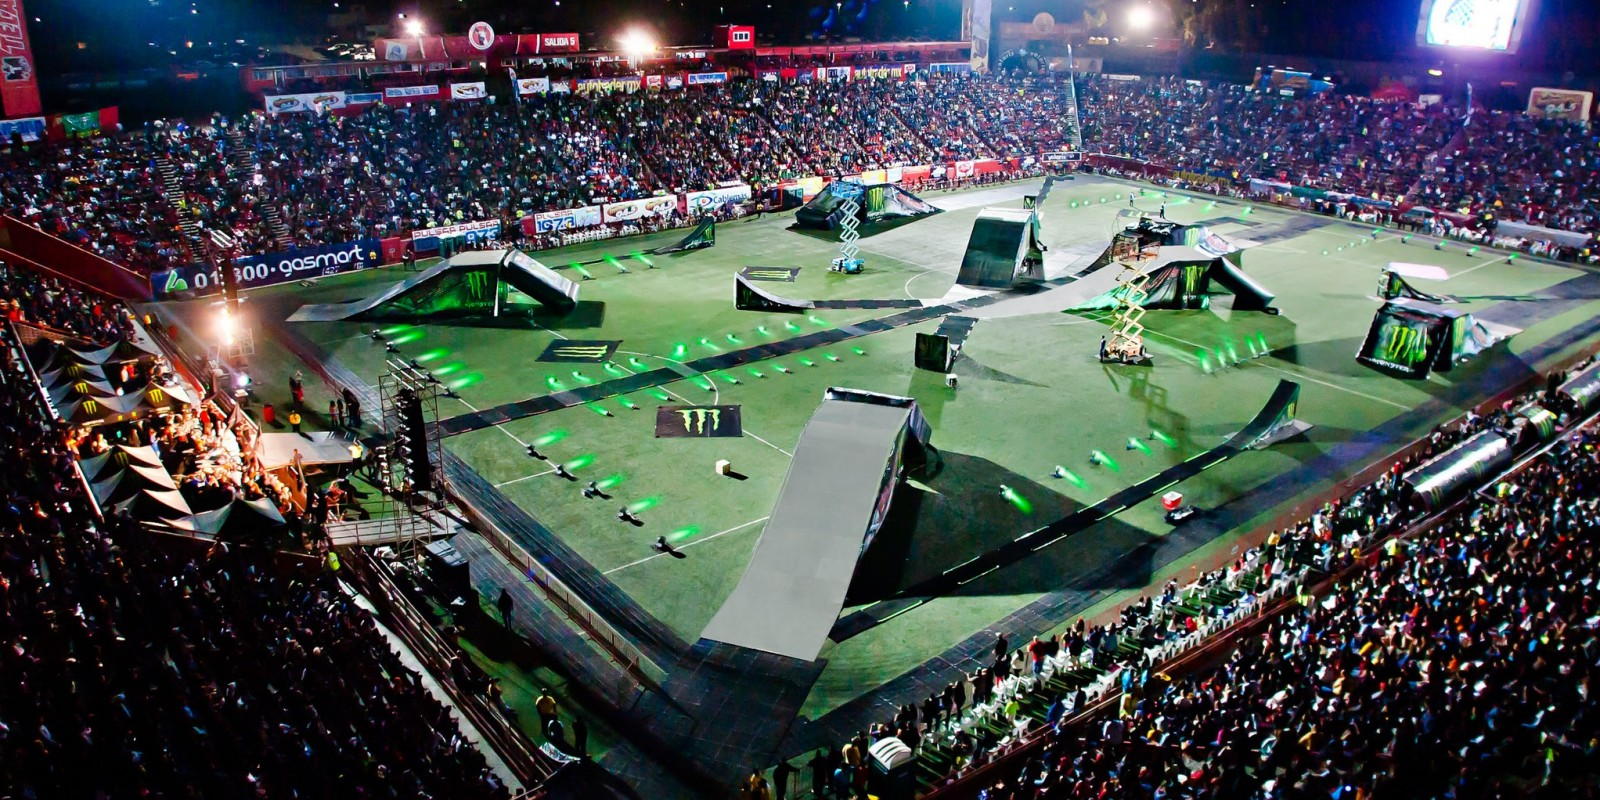 Arena Ciudad de México, where the X Pilots 2015 was held by Monster Energy at Mexico City, Mexico.